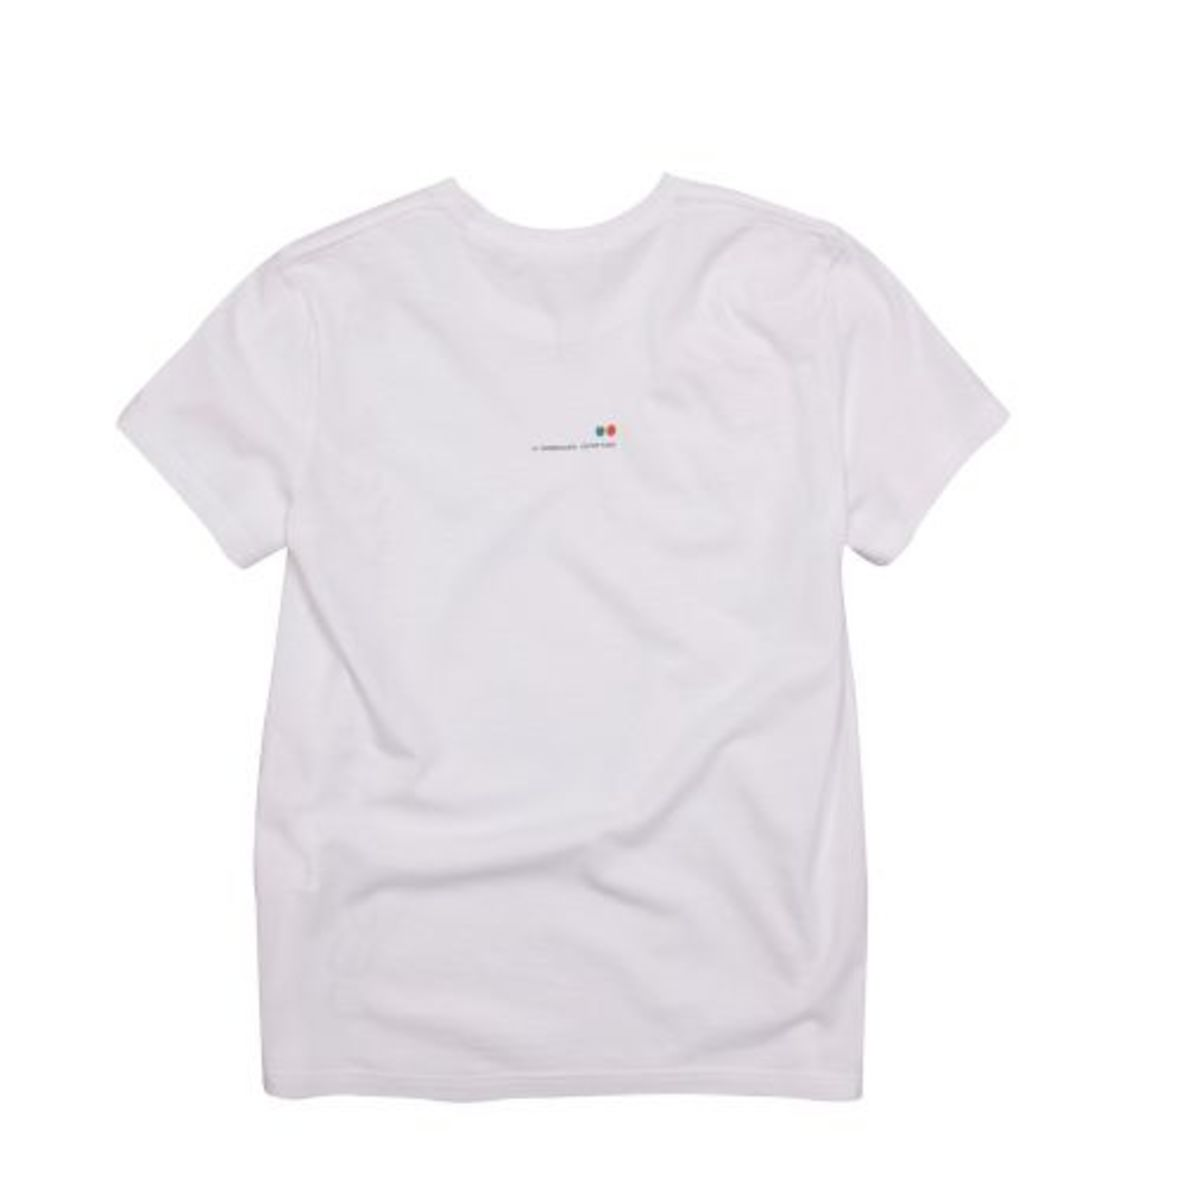 undercover_ss10_tee_4